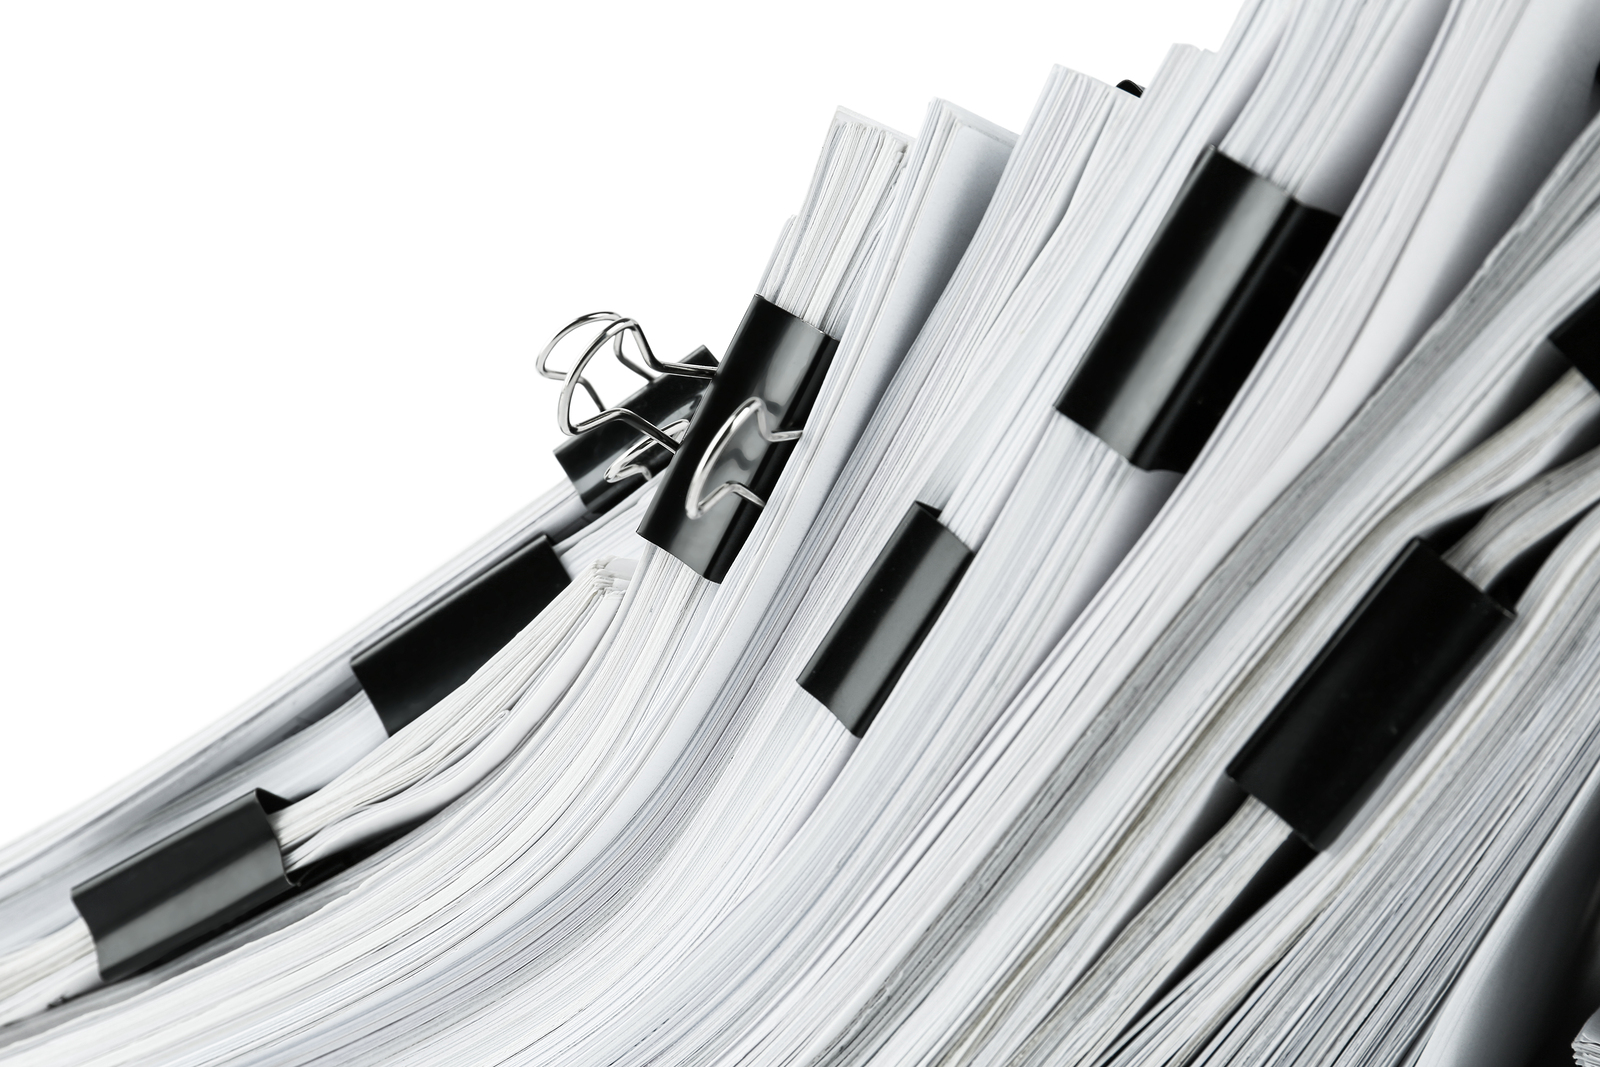 Pile of documents with binder clips, closeup